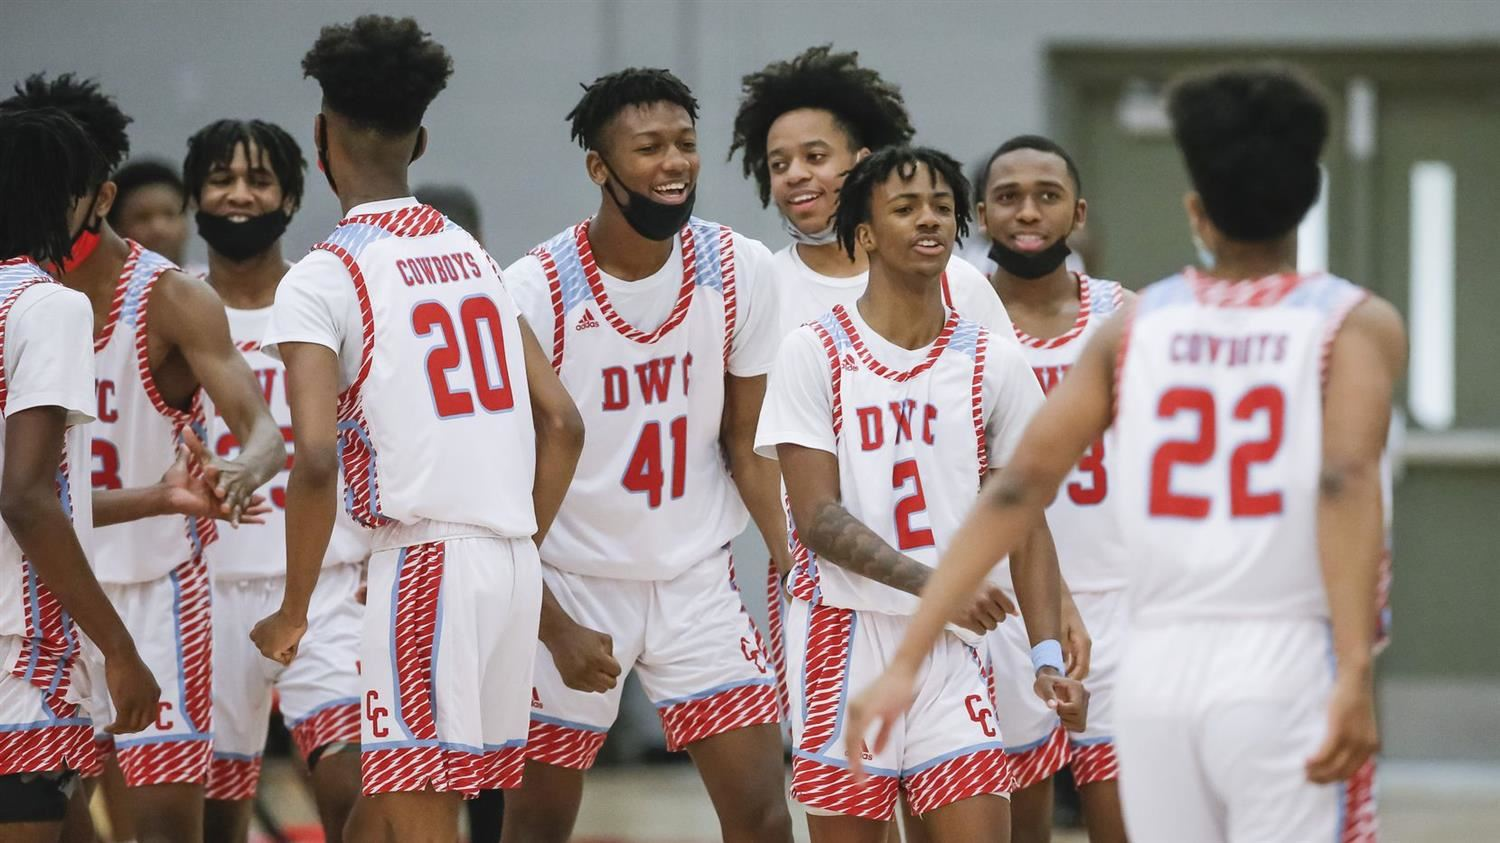 Dallas ISD is a powerhouse school district in basketball..... See Dallas Morning New article